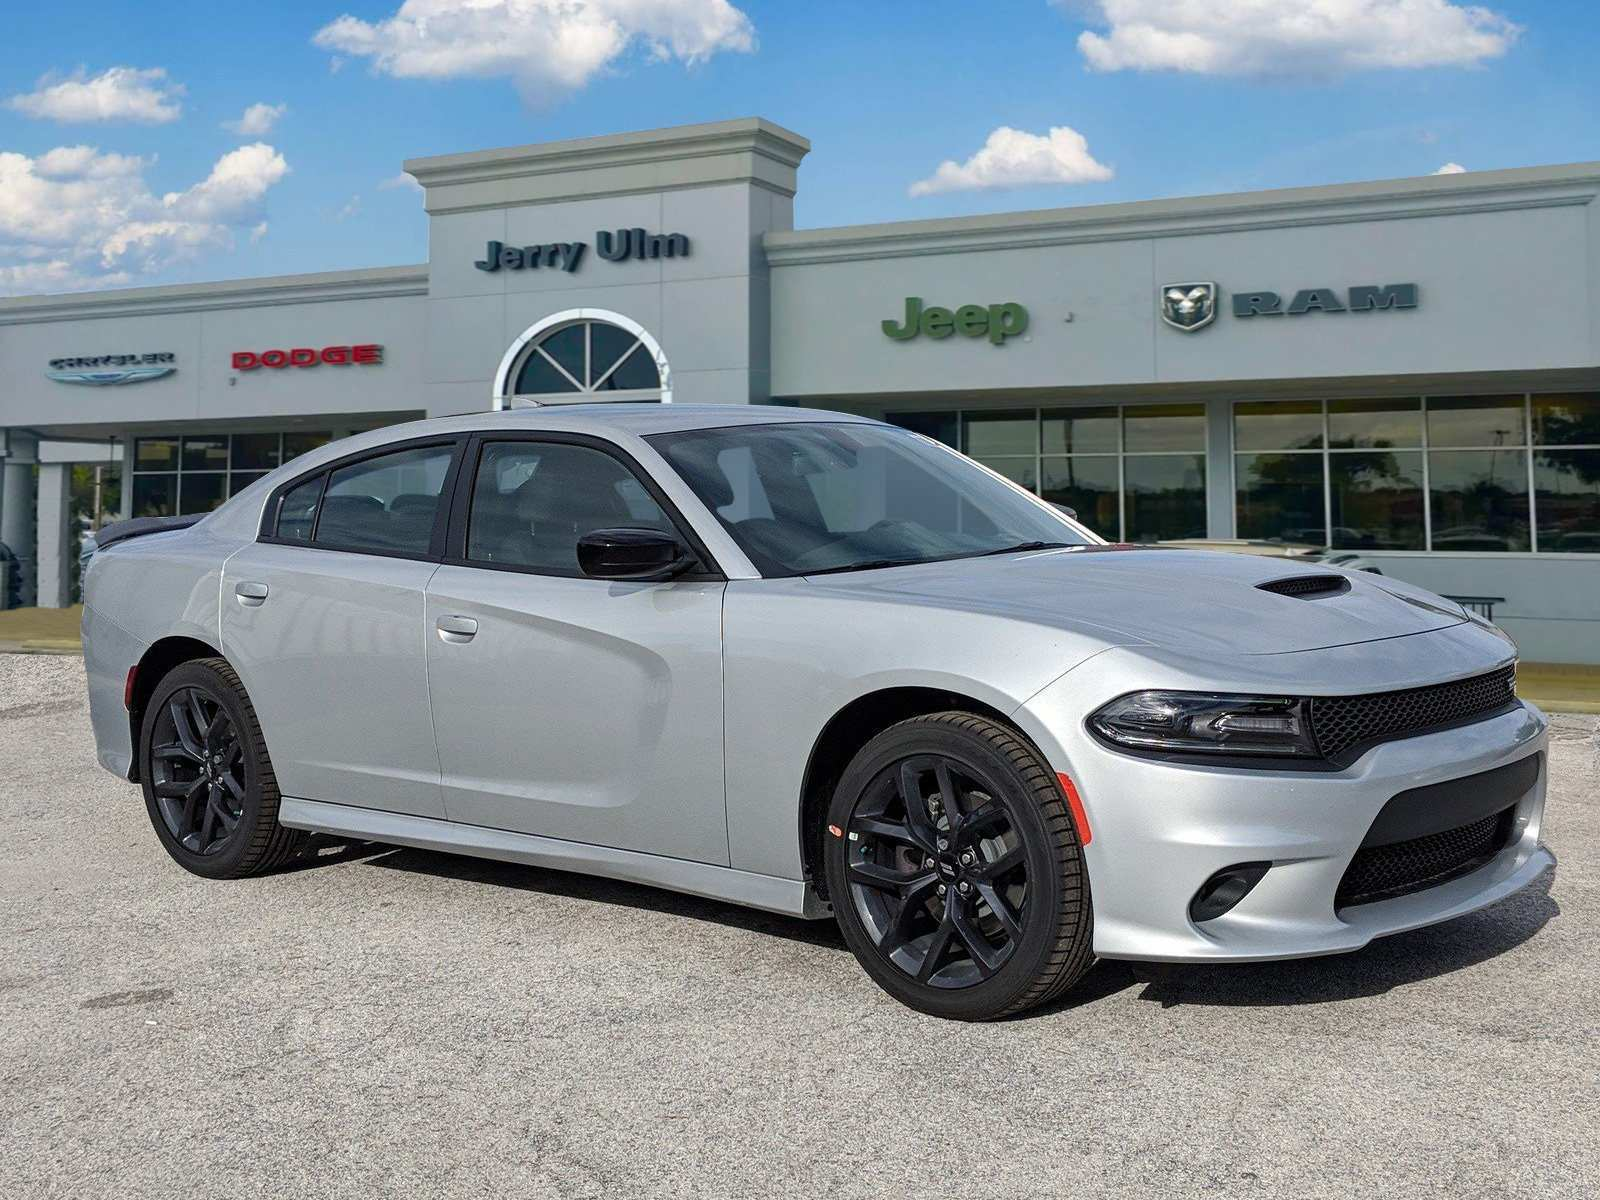 86 All New 2019 Dodge Charger Pictures